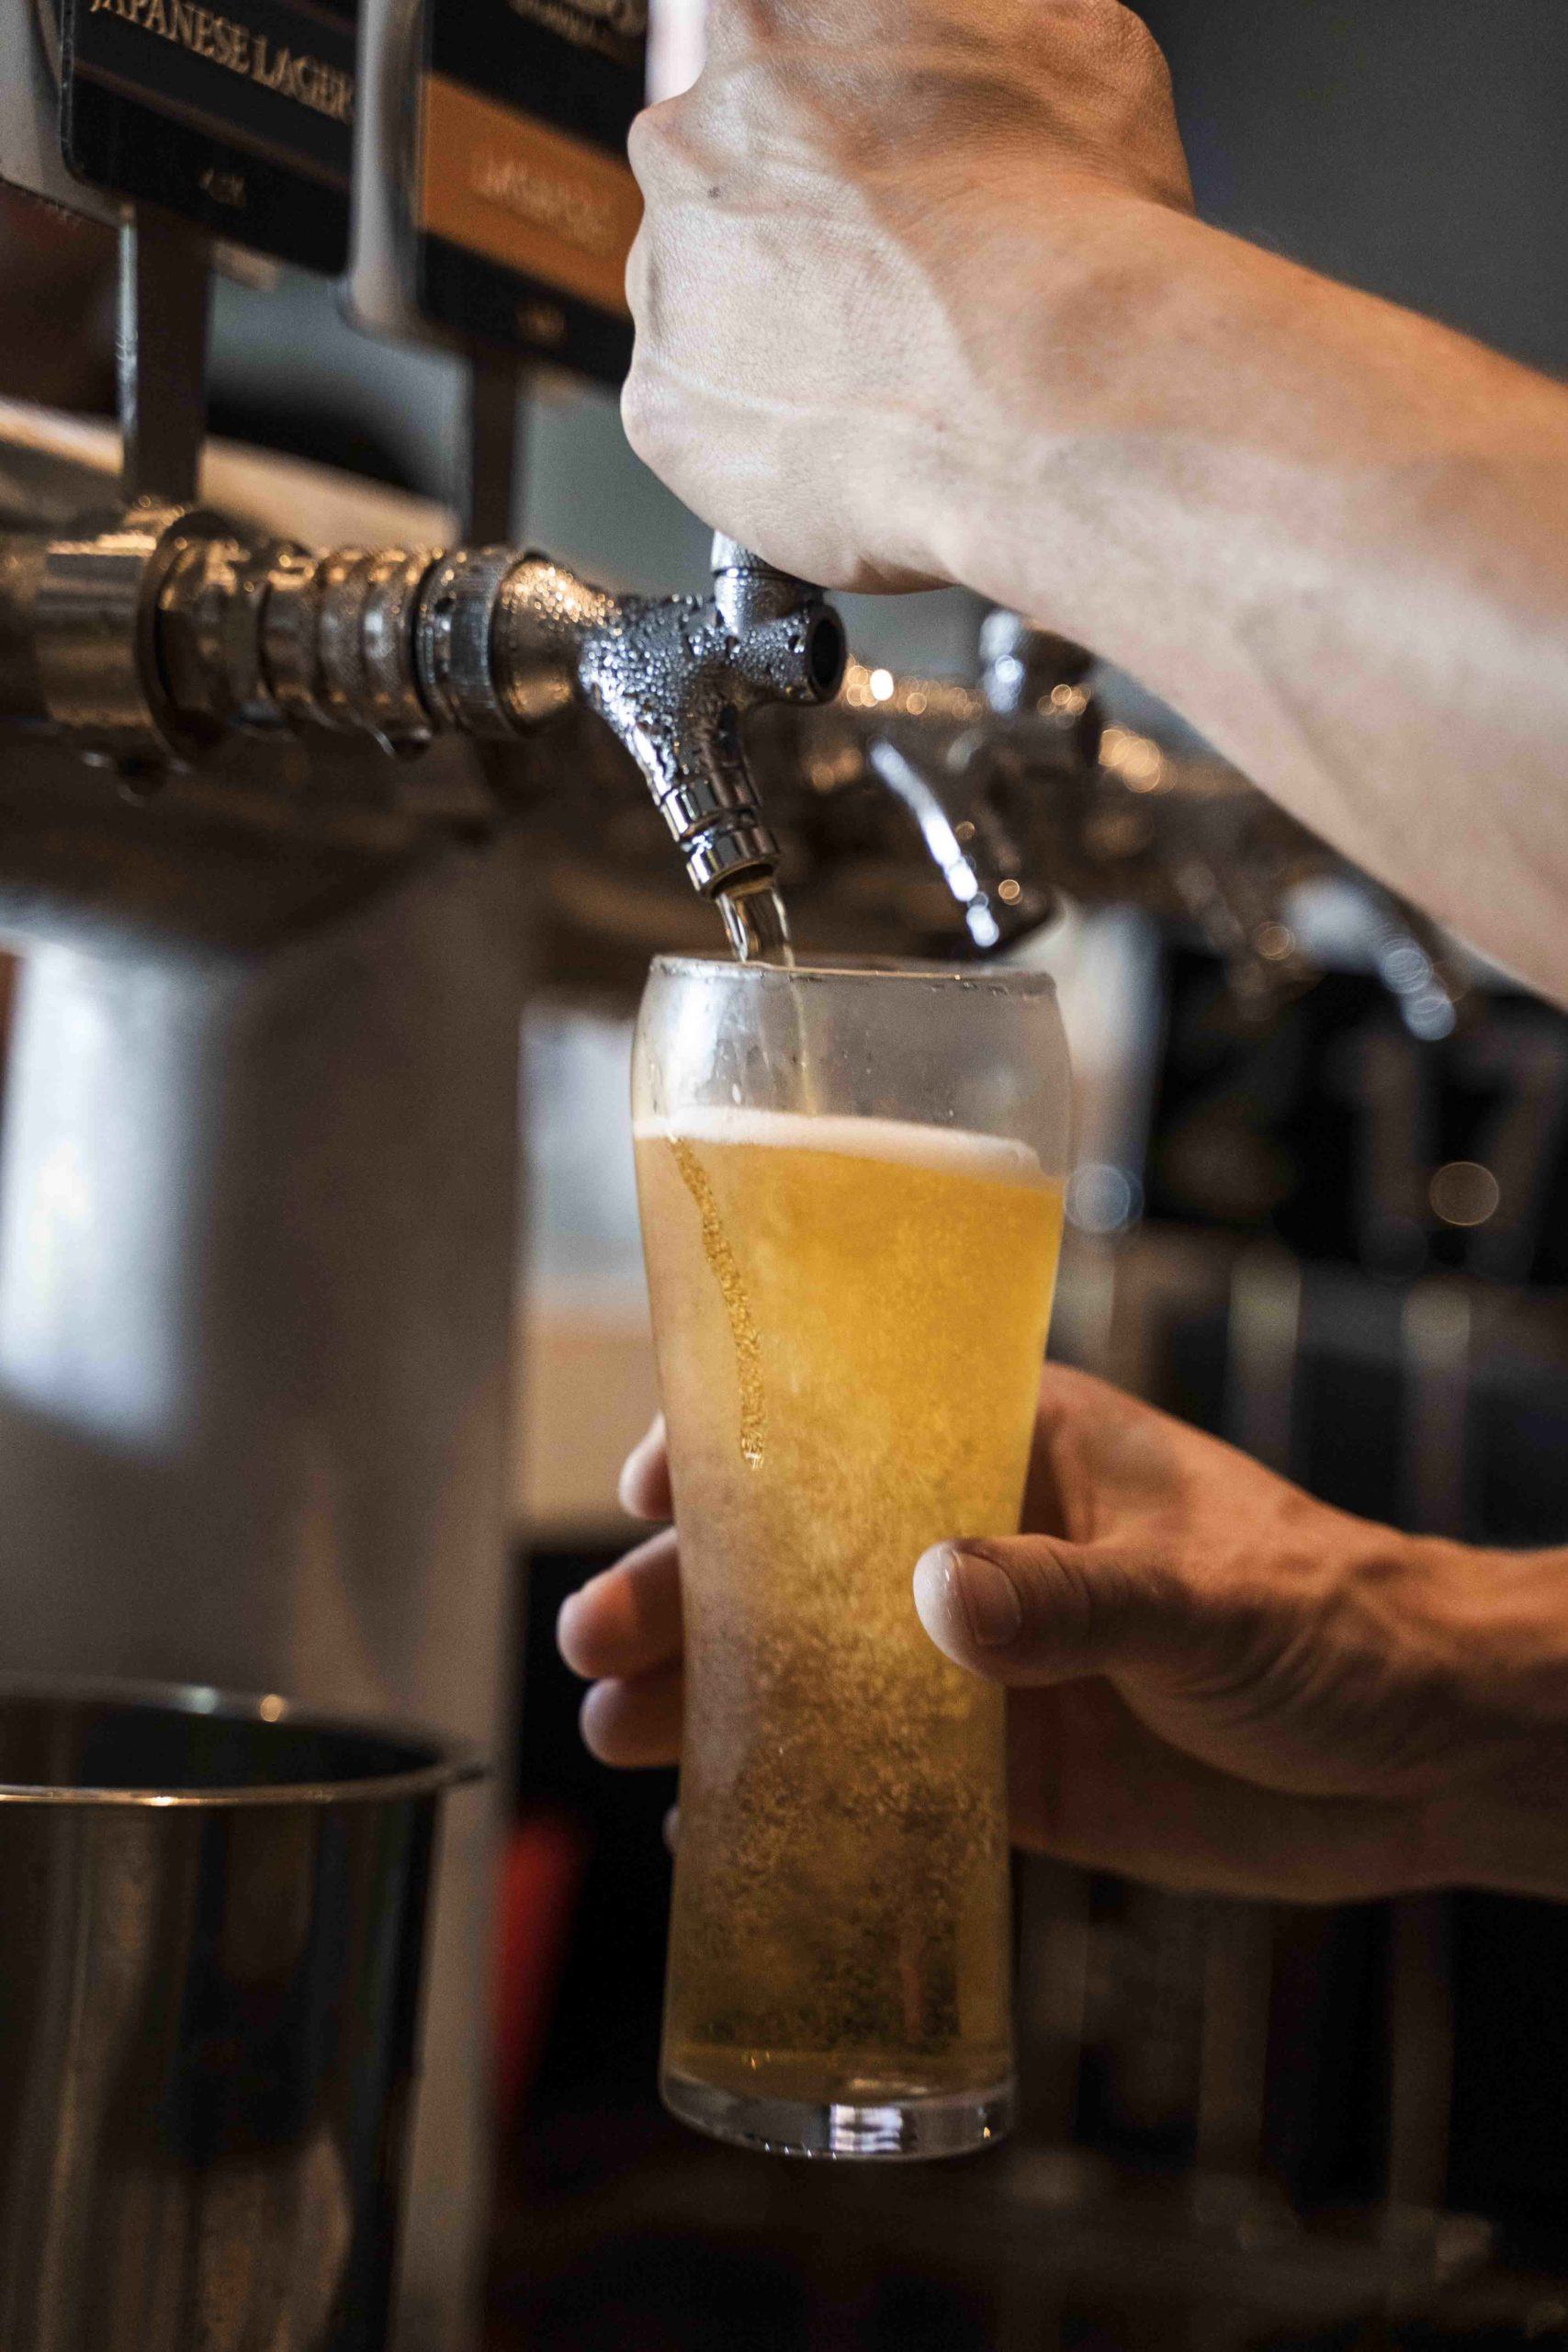 Heads of Noosa brewery beer from tap